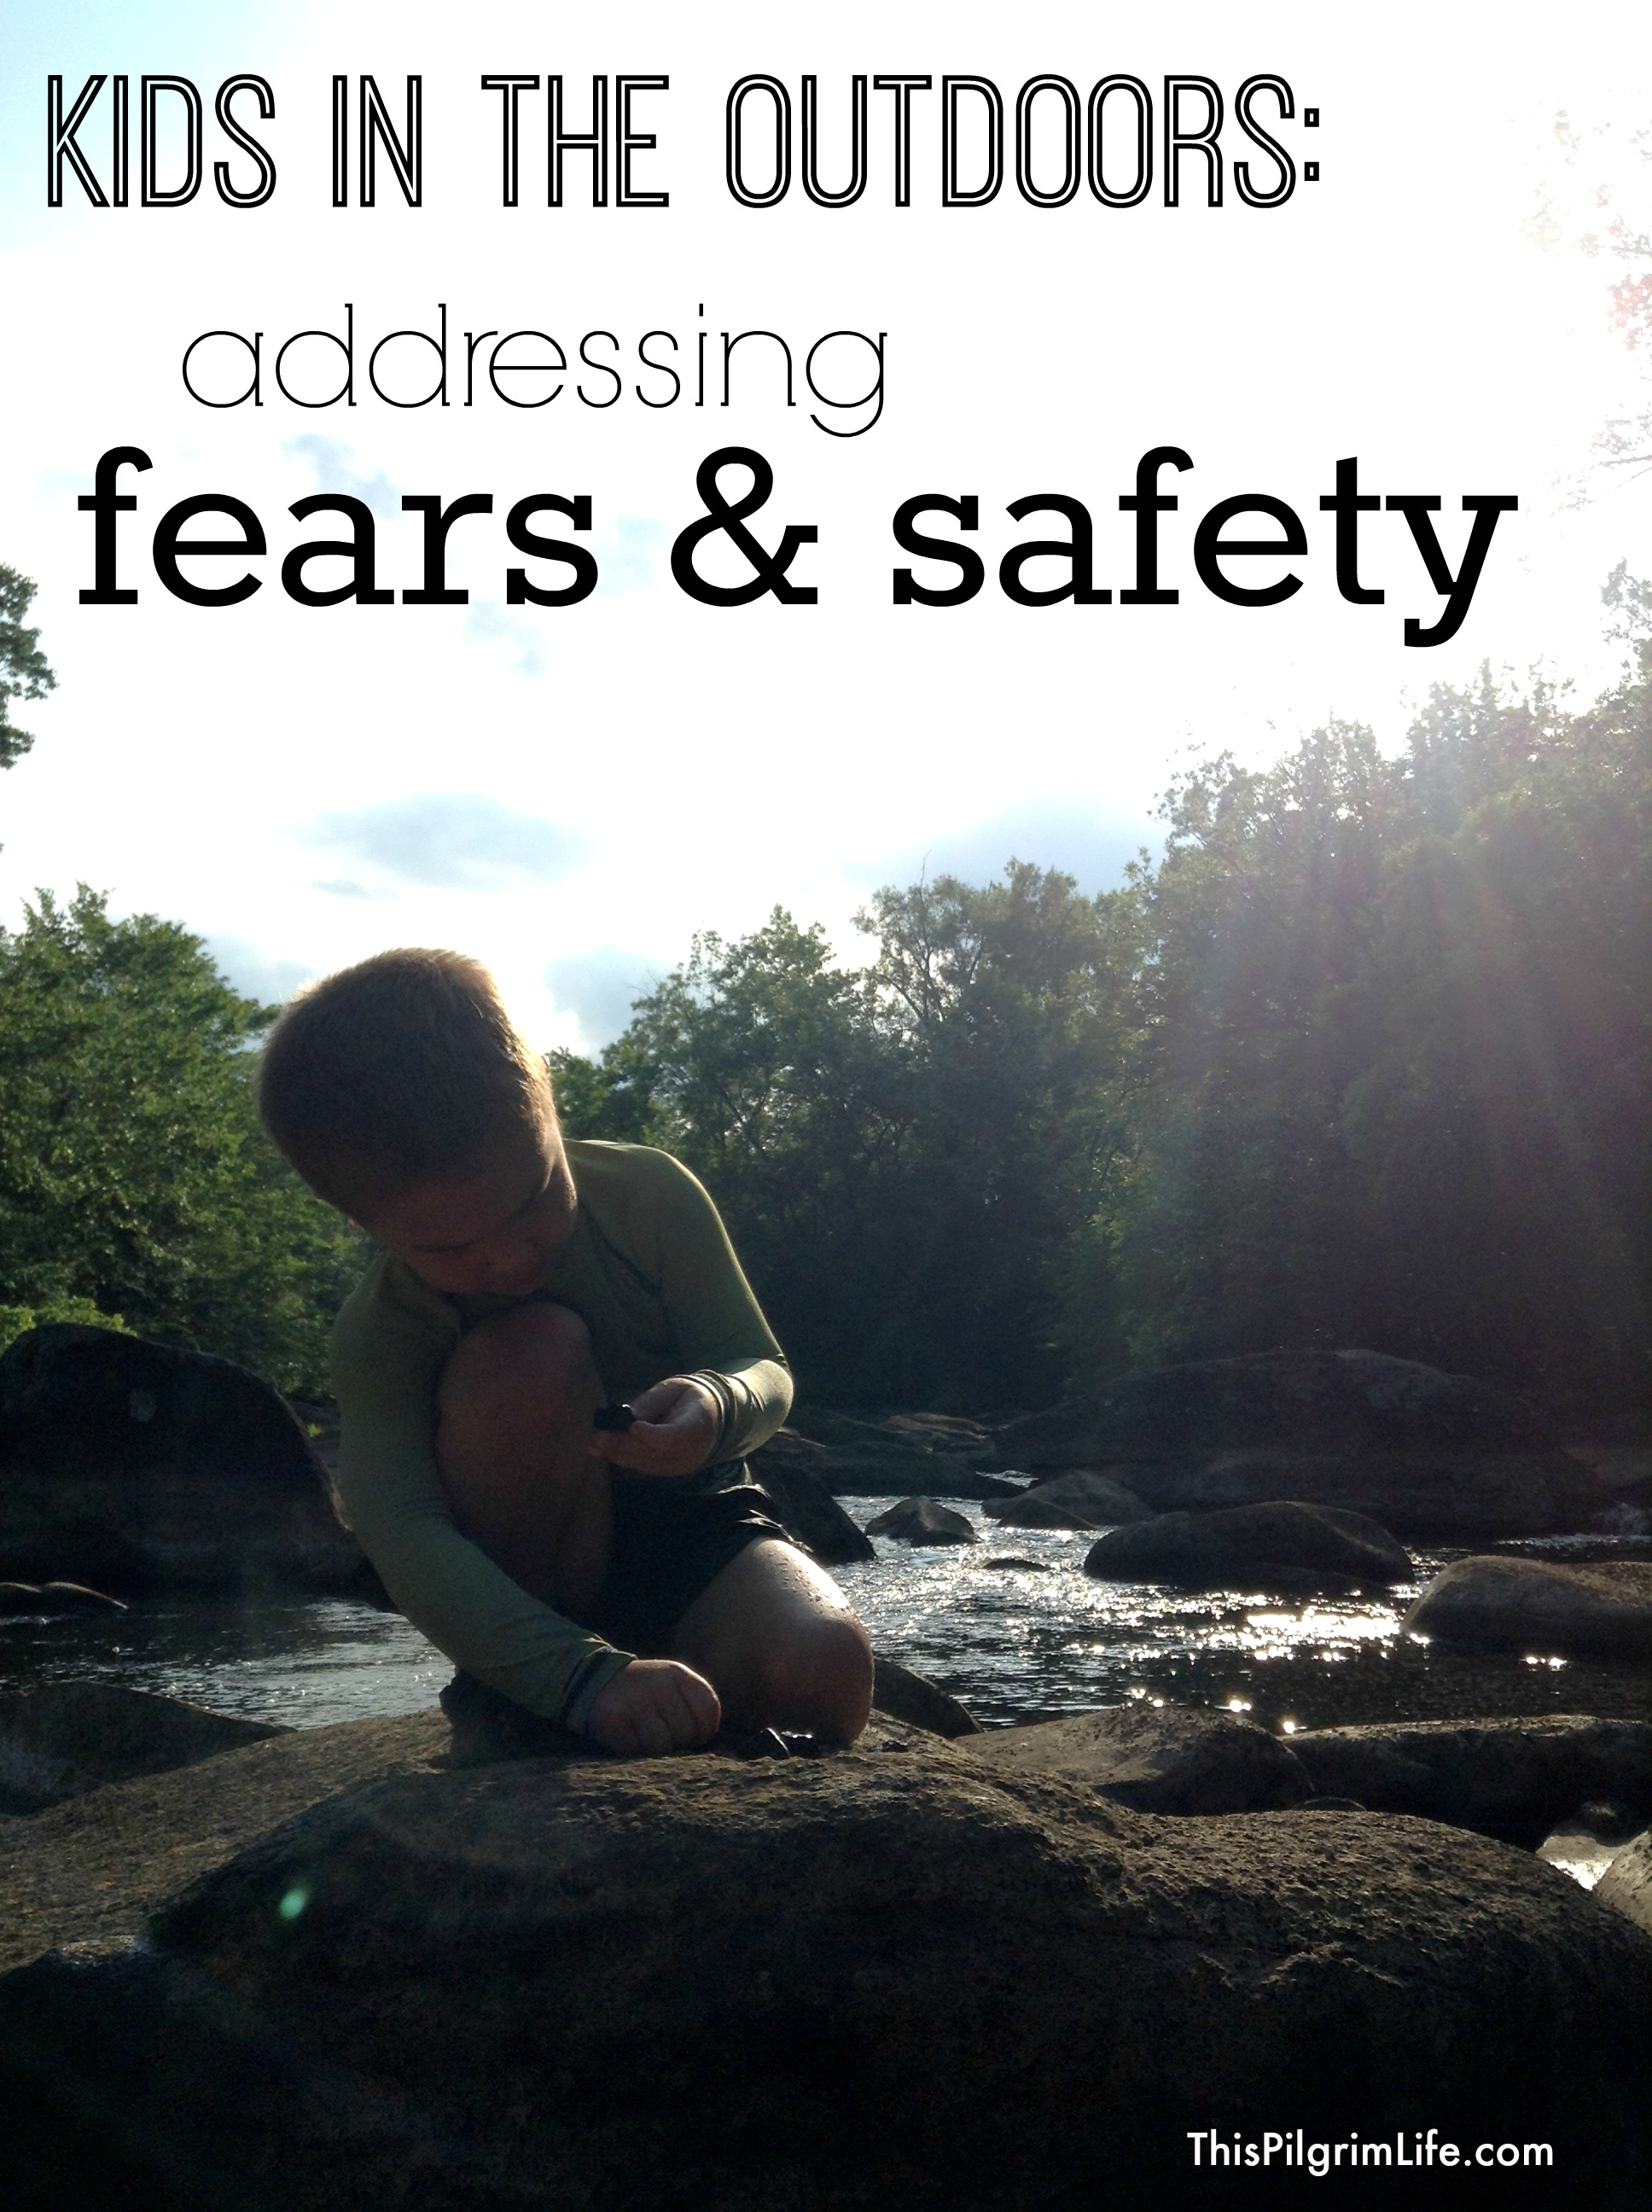 Kids in the Outdoors: Addressing Fears & Safety